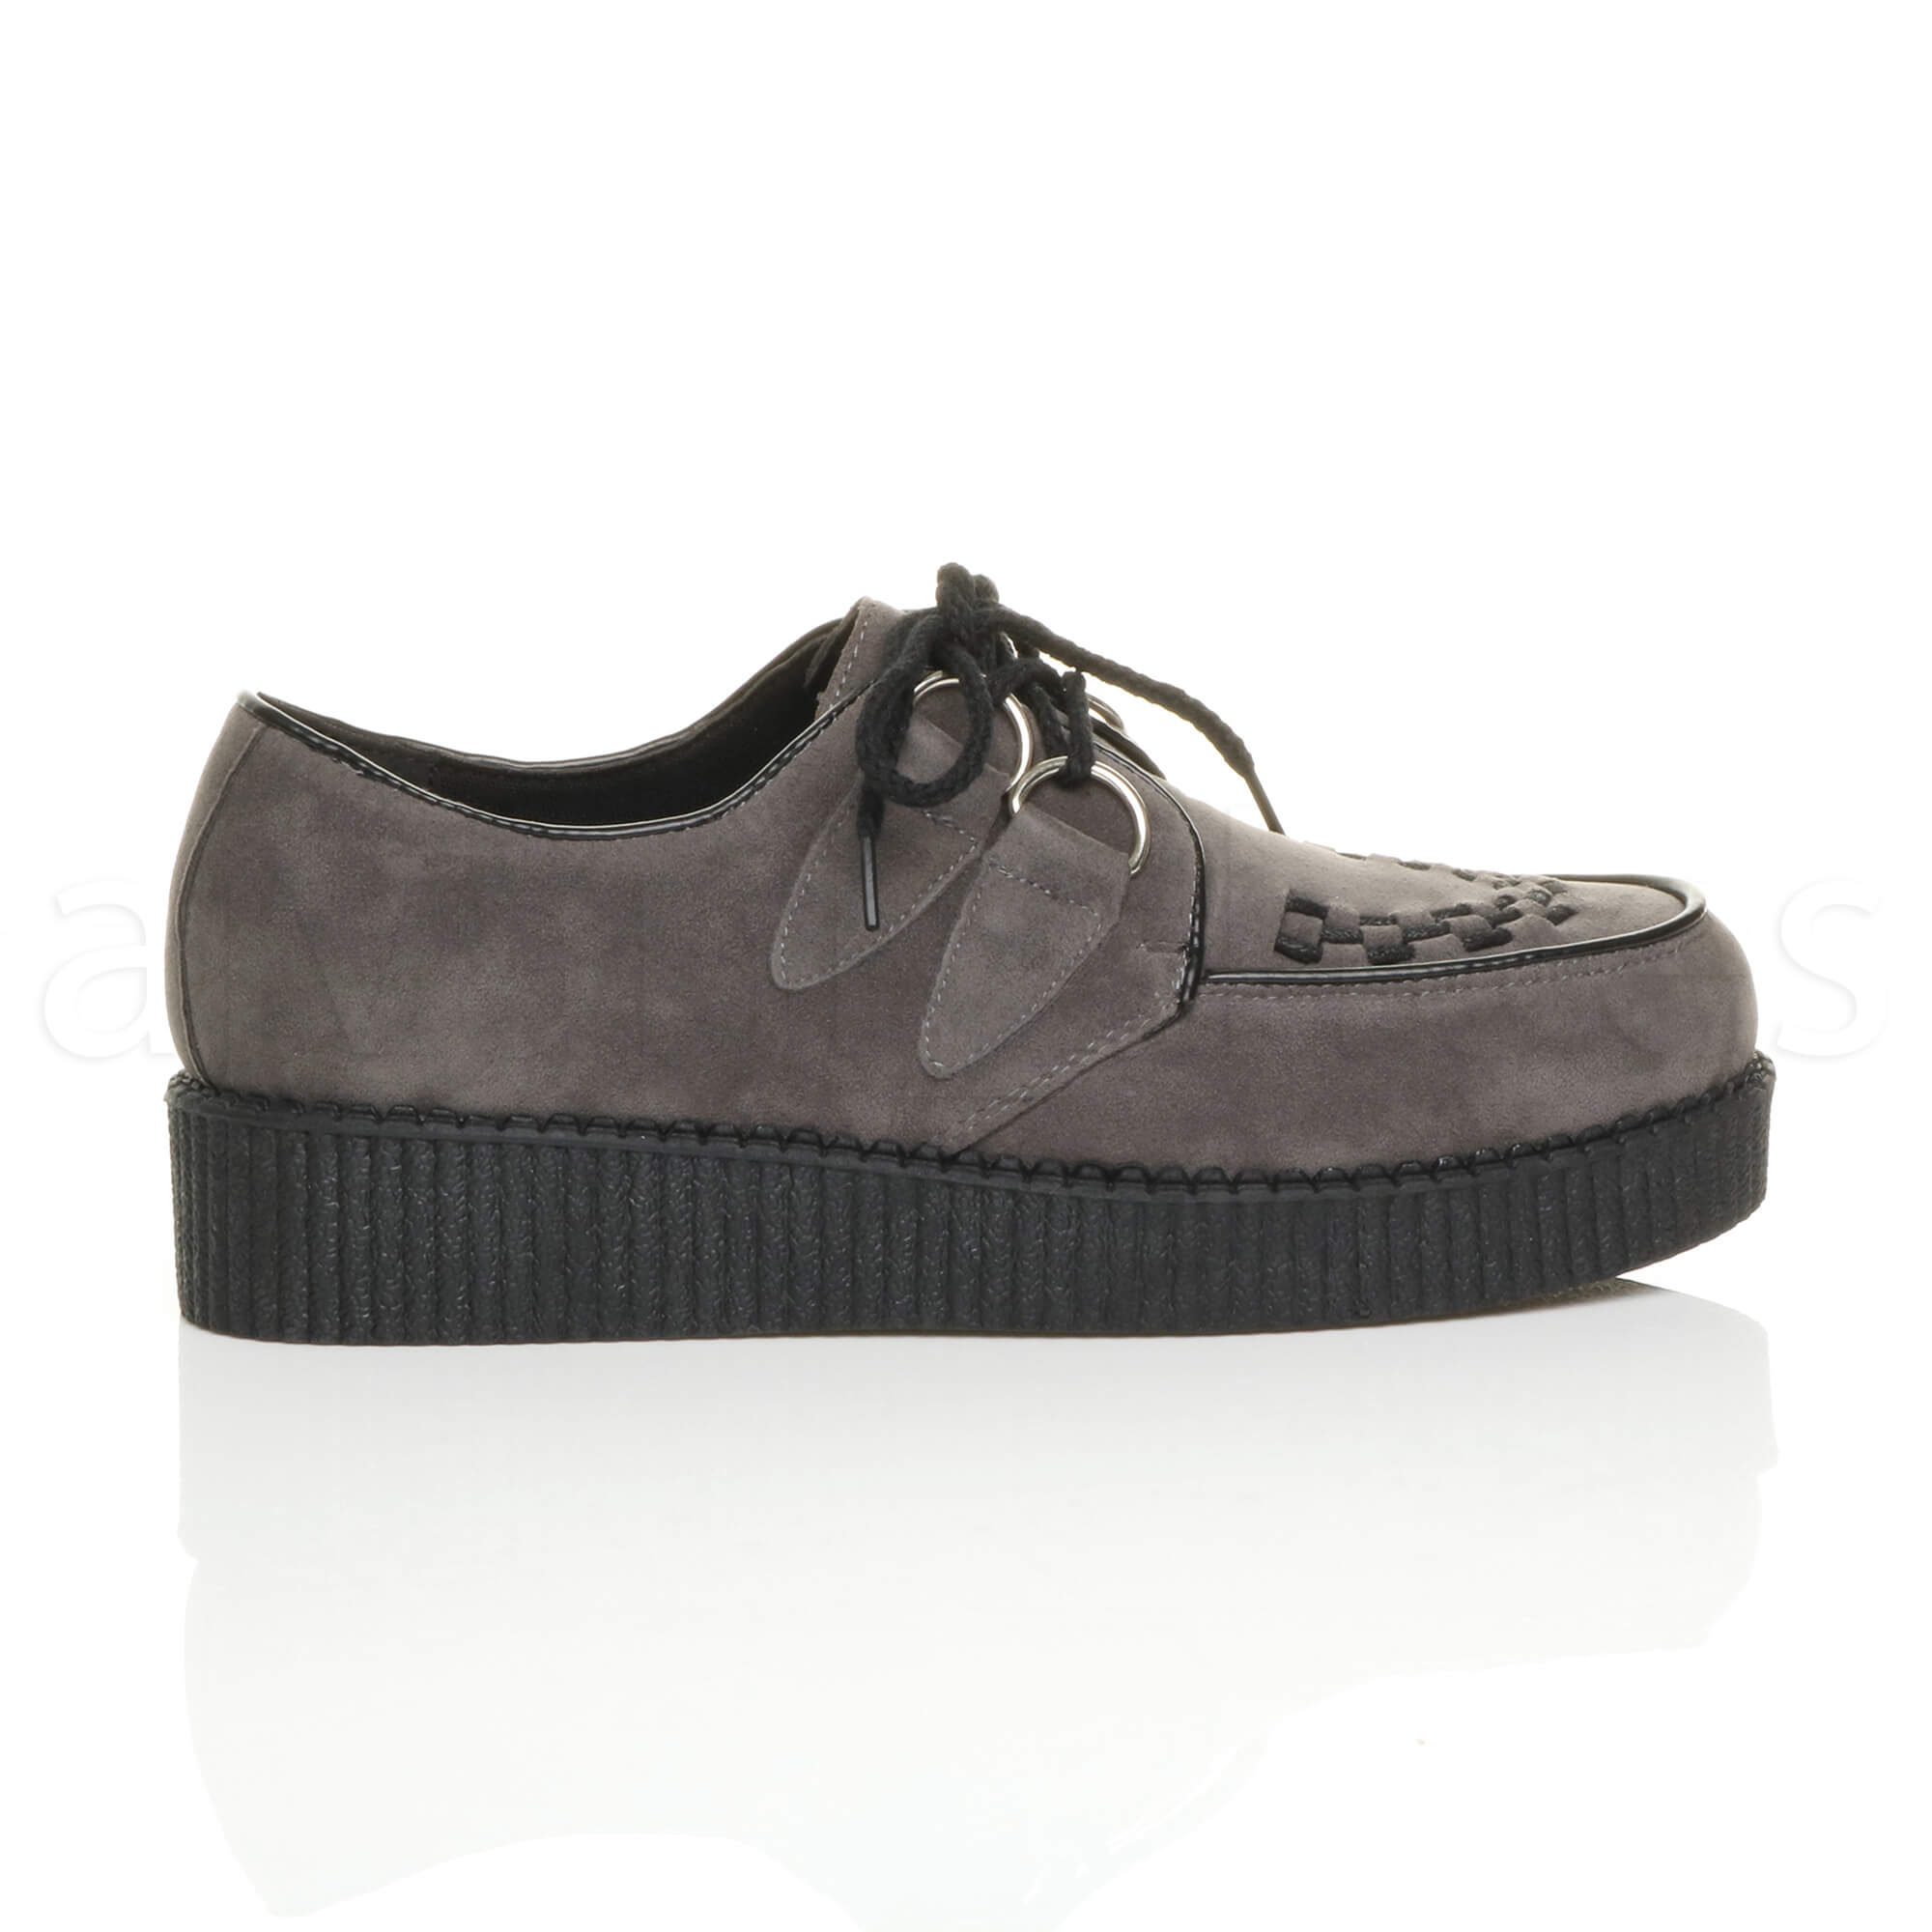 MENS-PLATFORM-WEDGE-LACE-UP-GOTH-PUNK-BROTHEL-CREEPERS-BEETLE-CRUSHERS-SHOES thumbnail 31